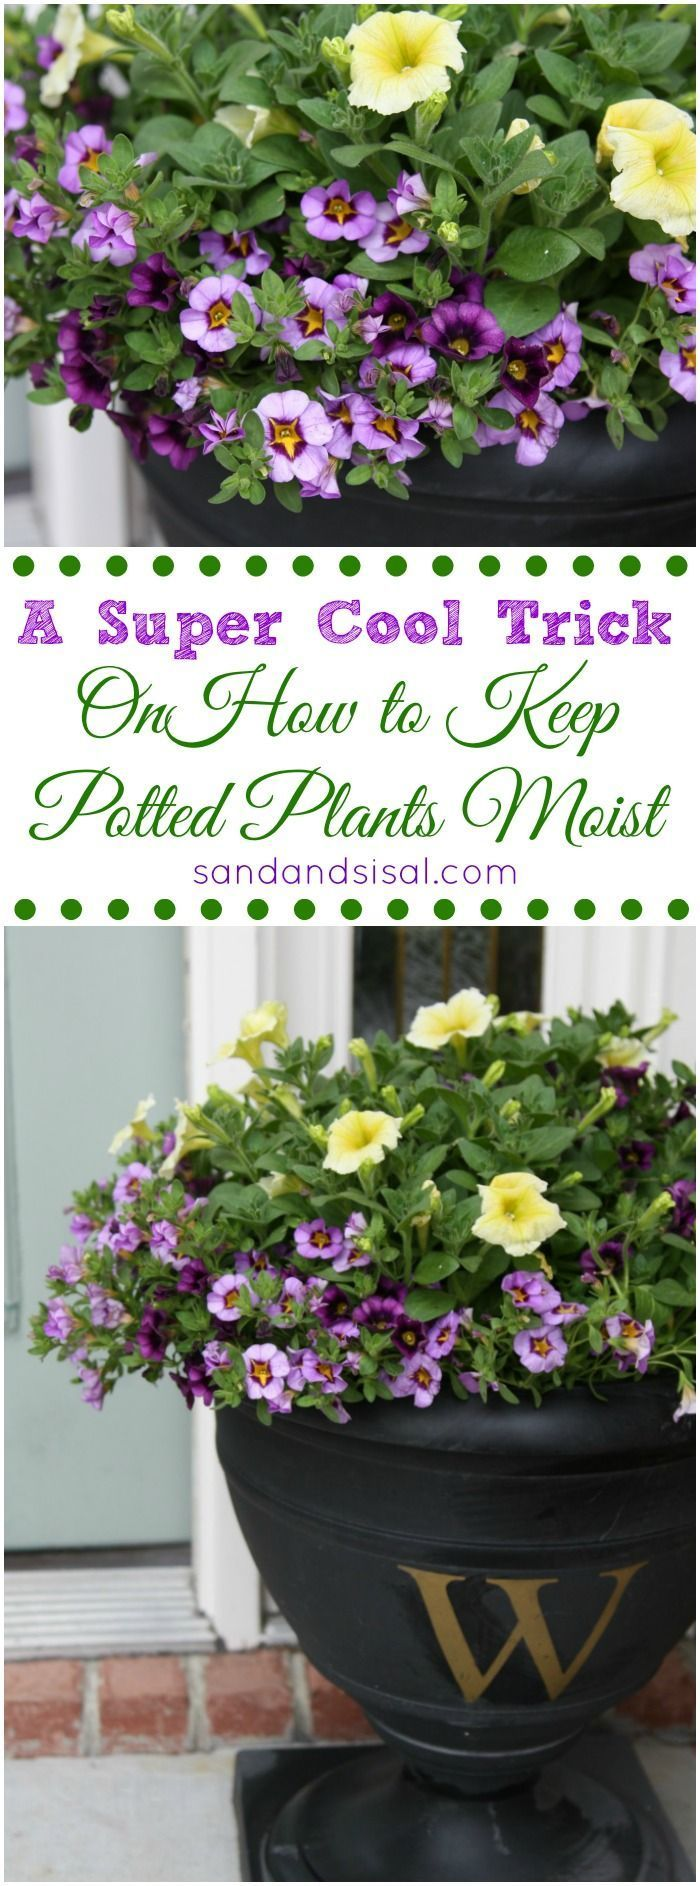 A Super Cool Trick on How to Keep Potted Plants Moist Longer